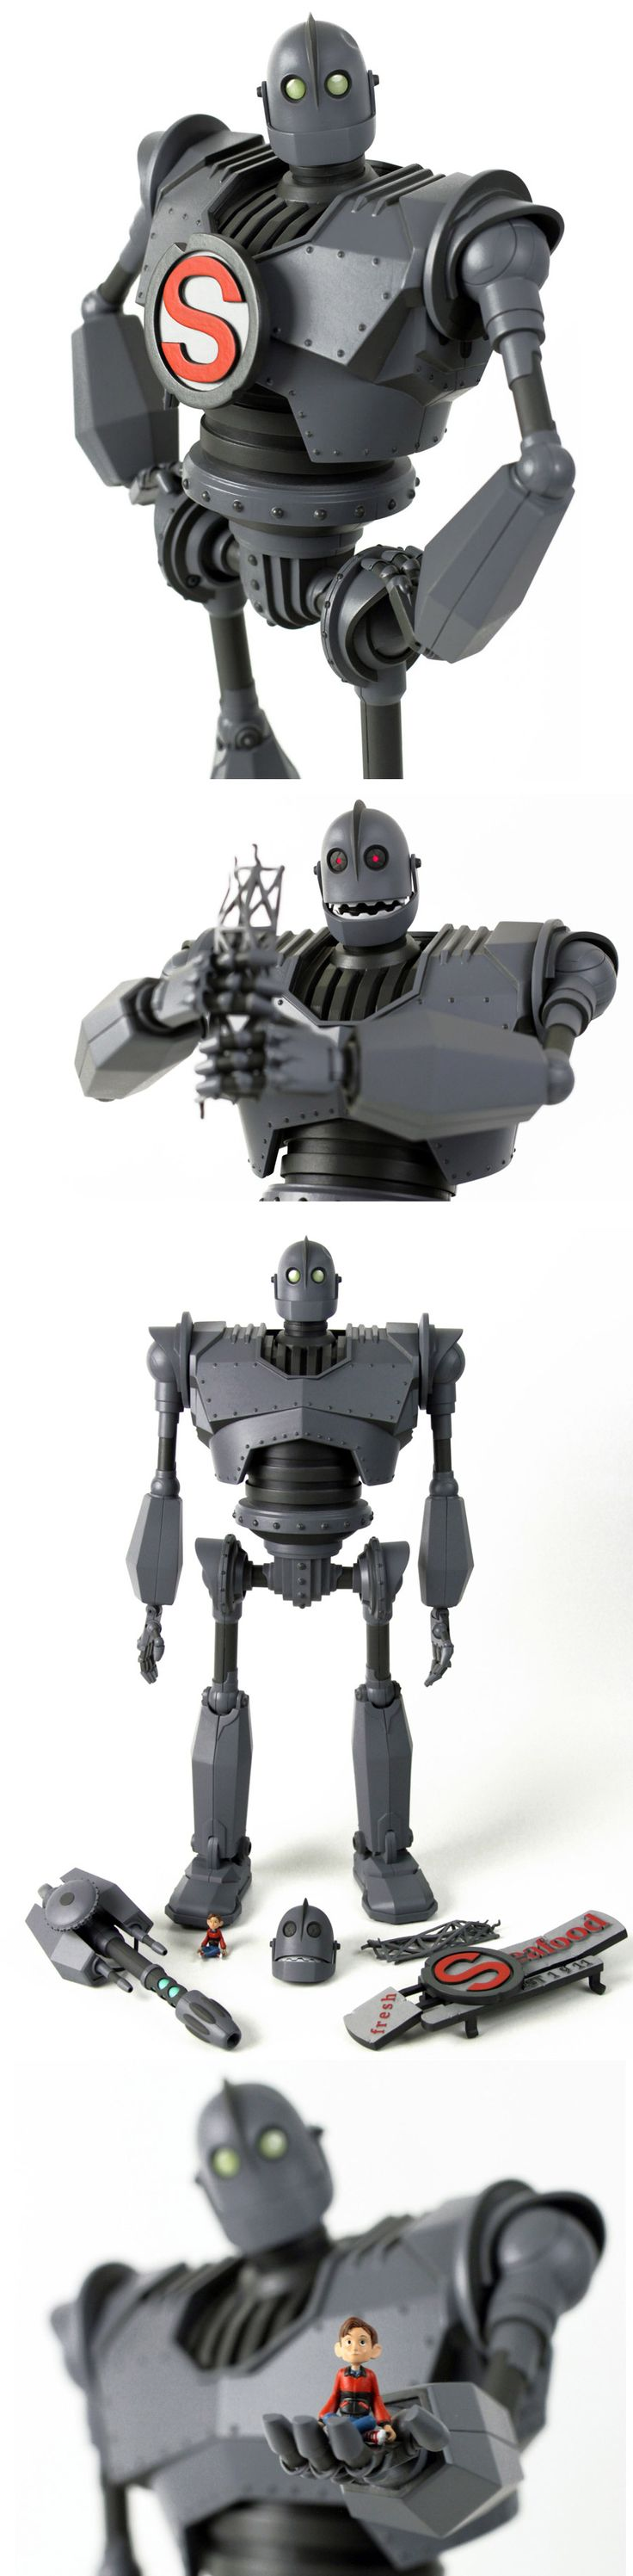 The Iron Giant Deluxe Figure by Mondo